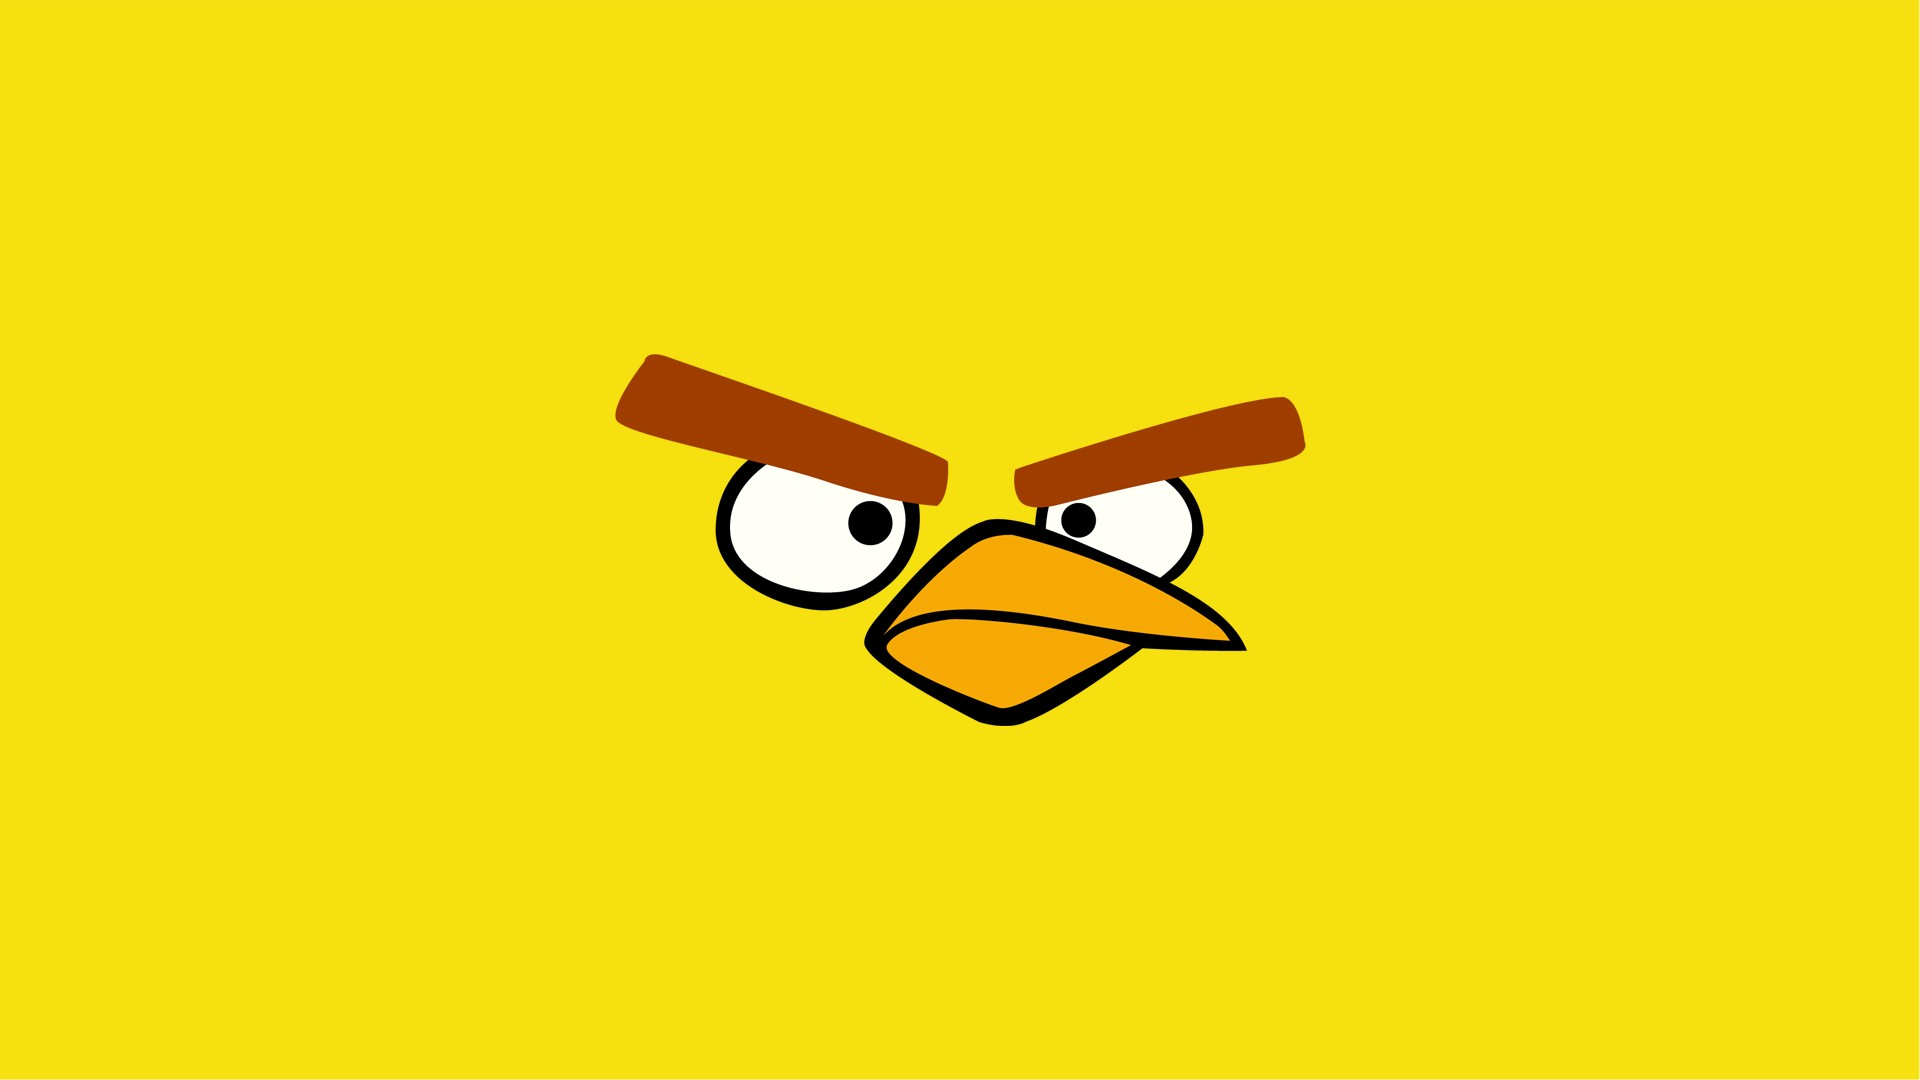 20 Best HD Angry Birds Wallpapers   DezineGuide 1920x1080